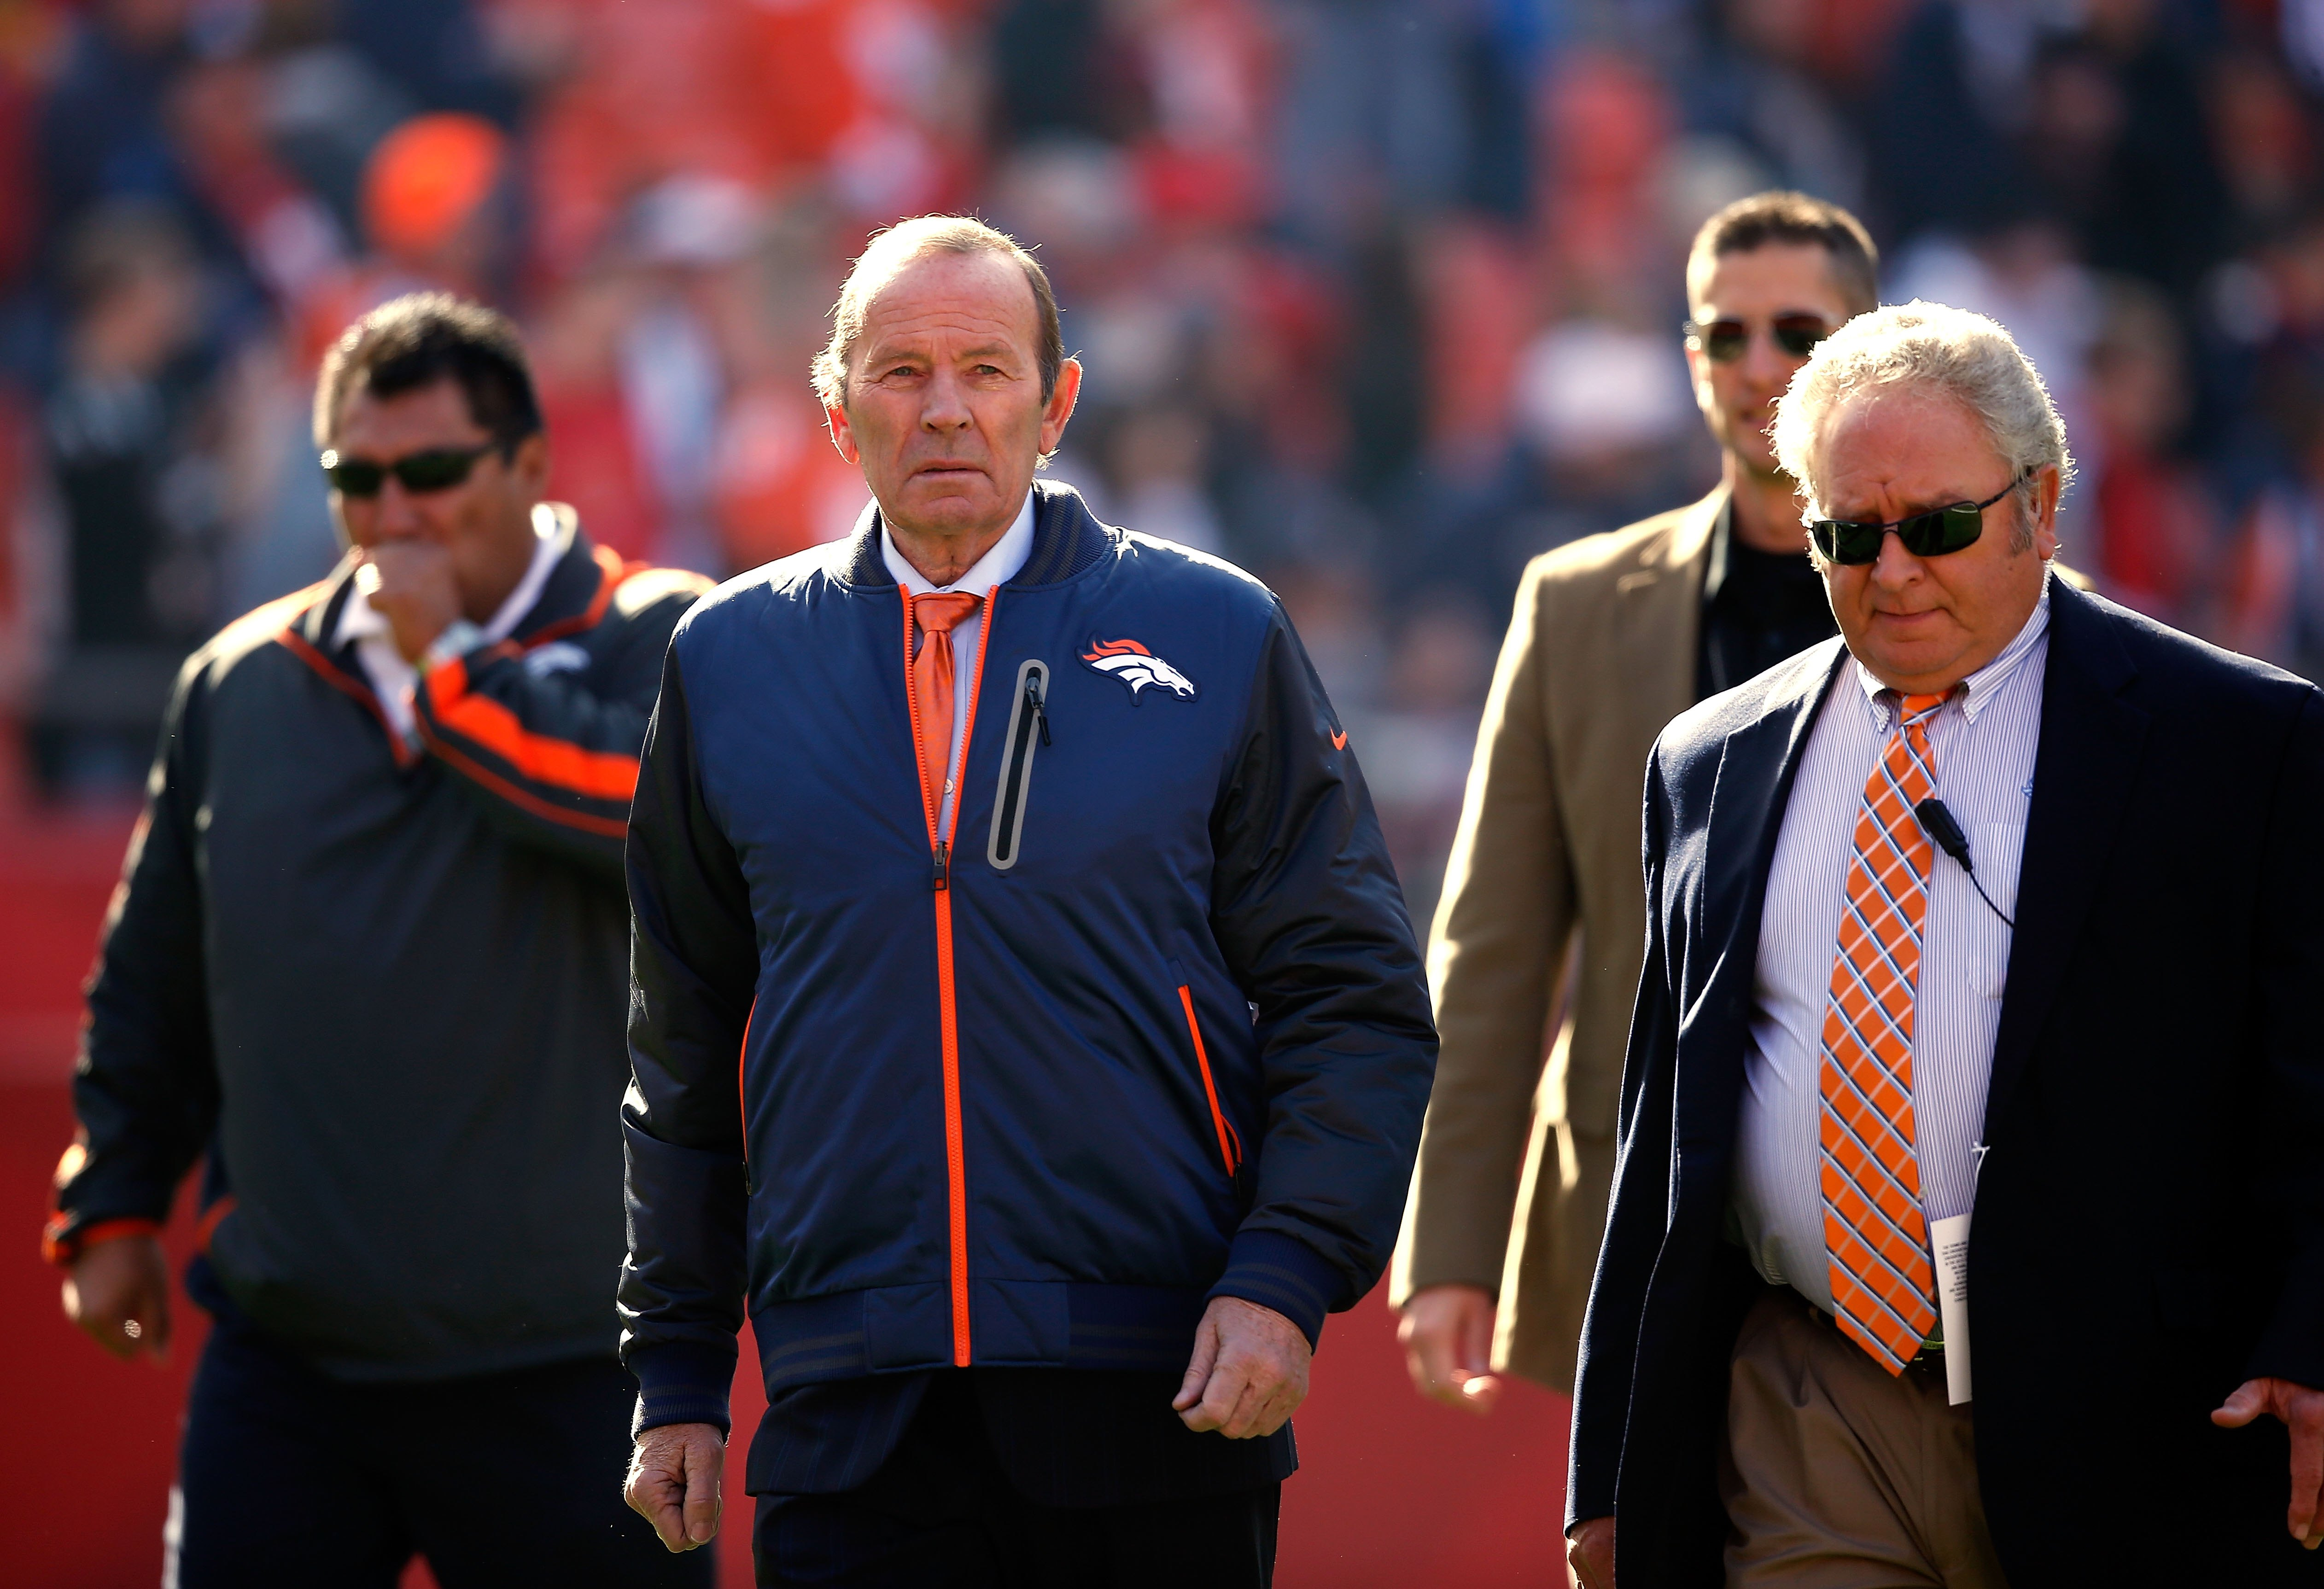 PatBowlen of the Denver Broncos watches player warm-ups